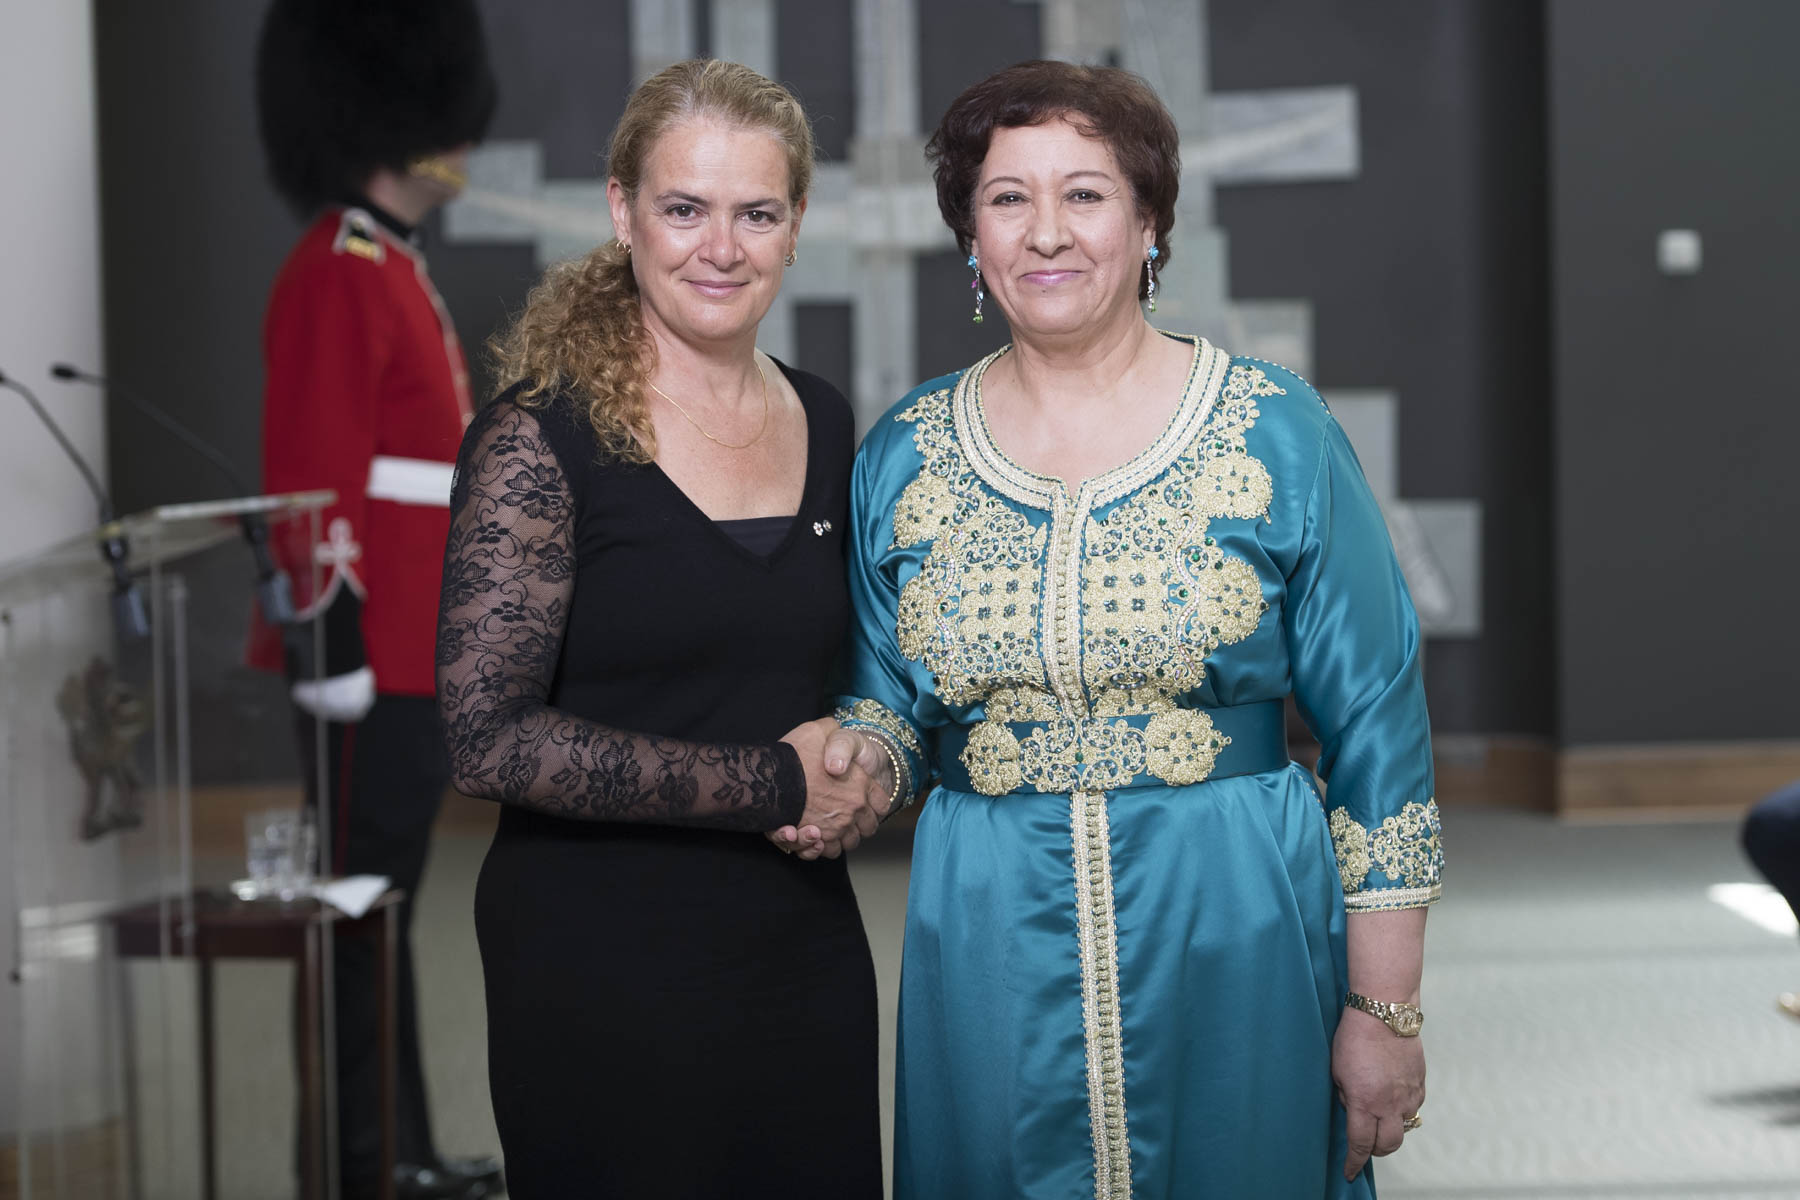 Her Excellency Souriya Otmani, Ambassador of the Kingdom of Morocco, was the first to present her letters of credence to the Governor General.